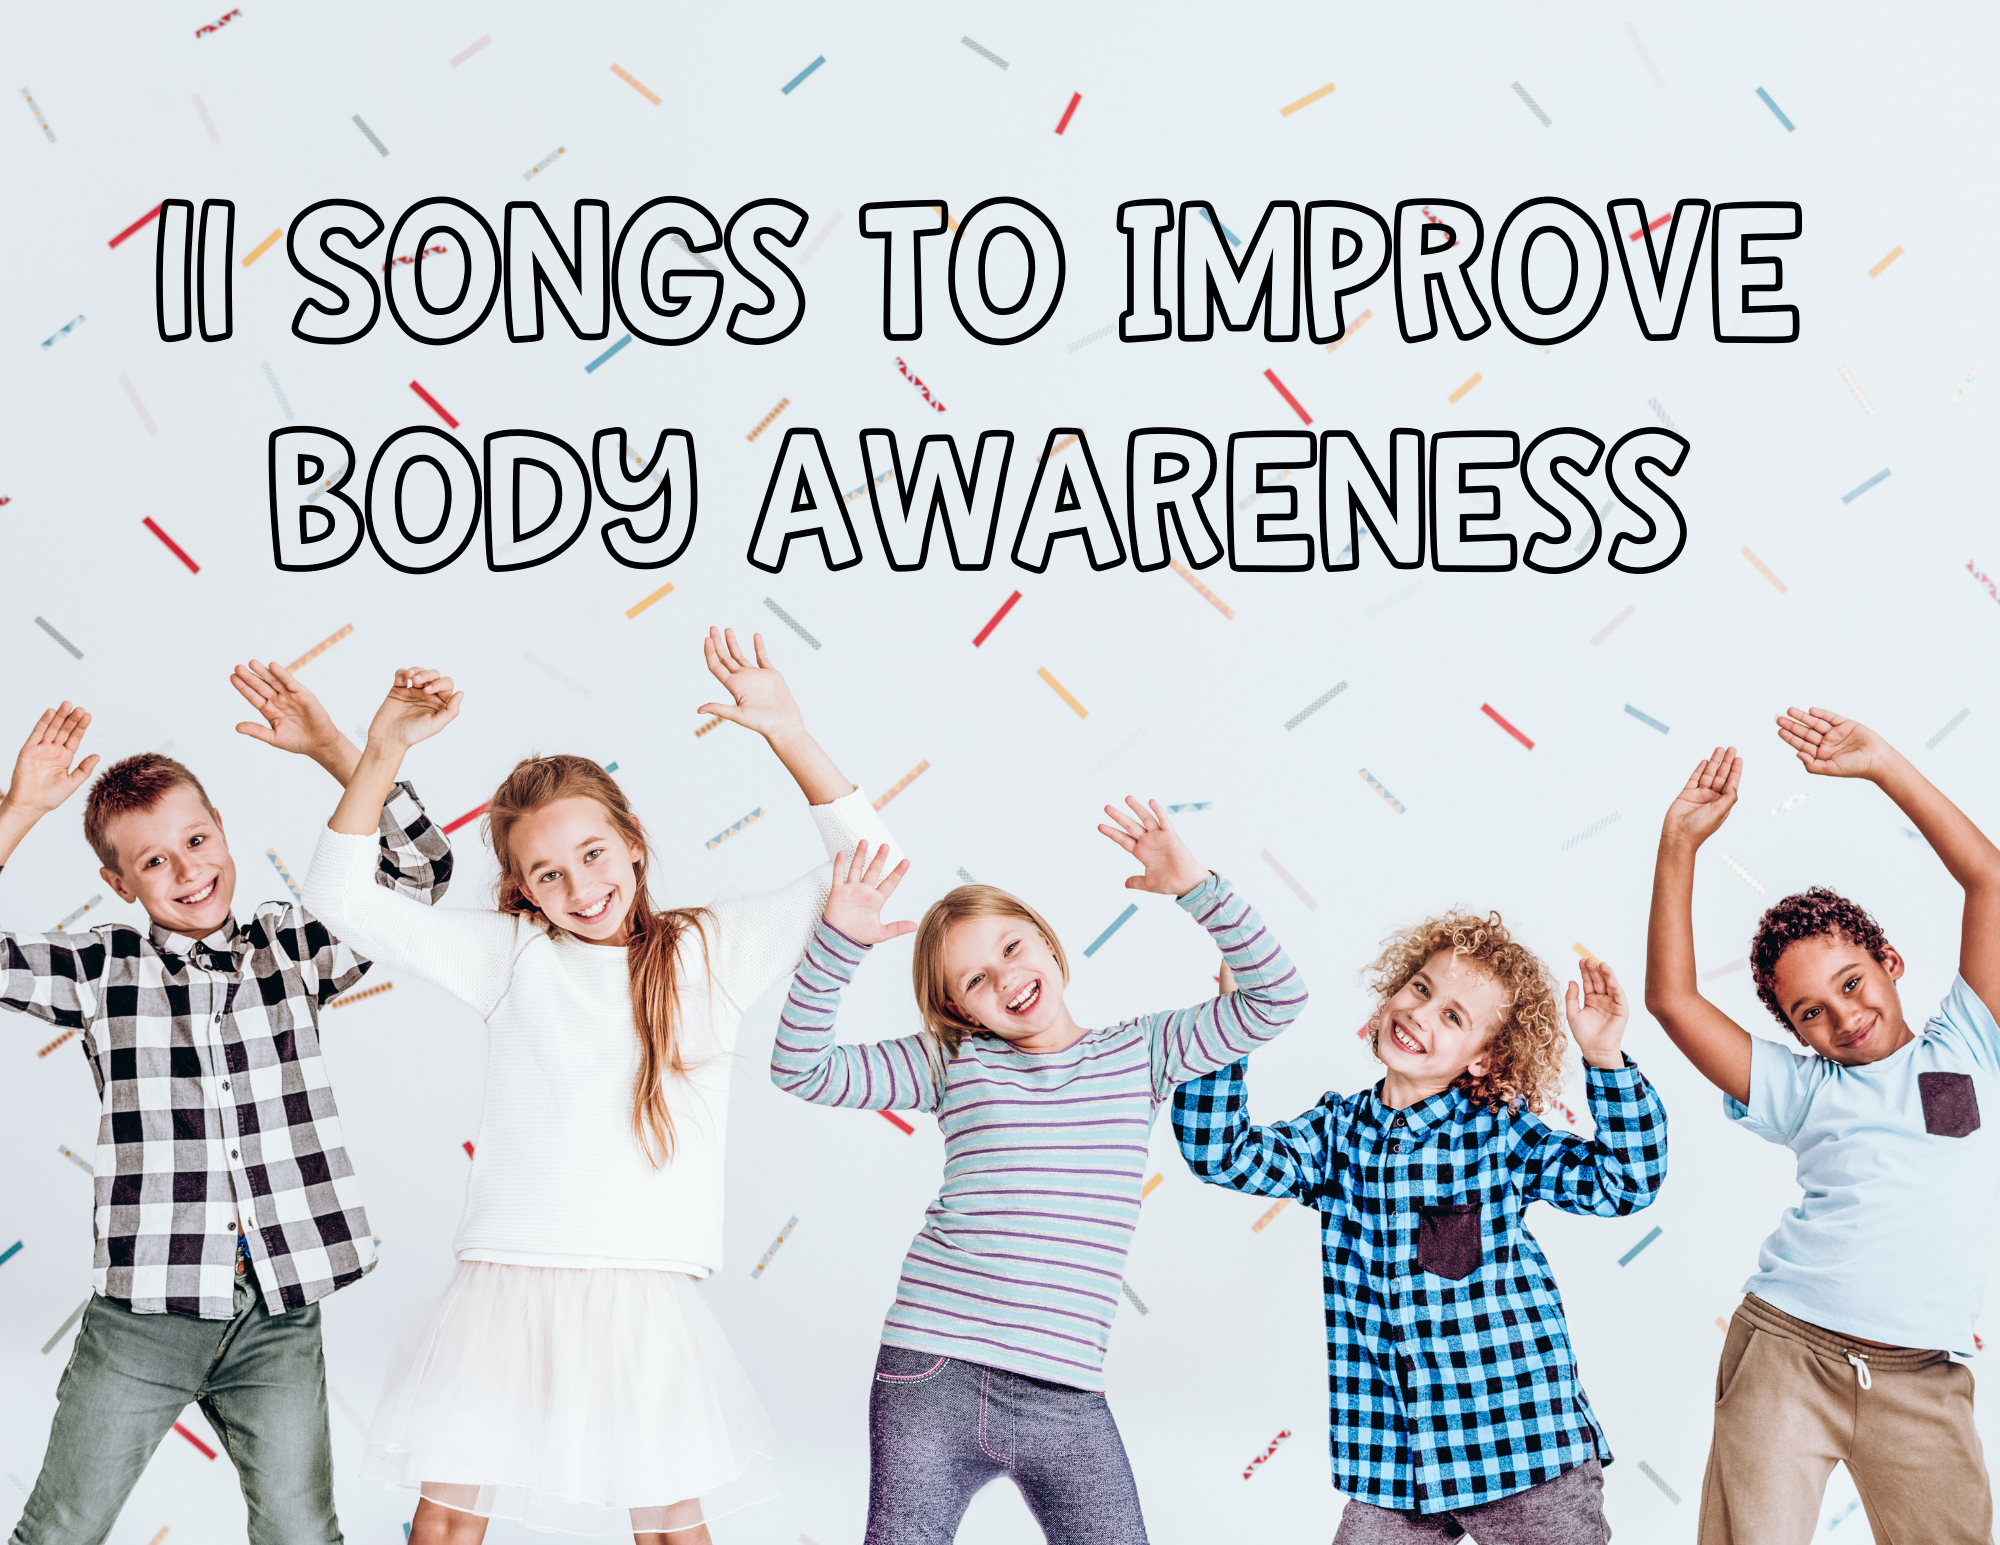 Kids use songs to improve body awareness